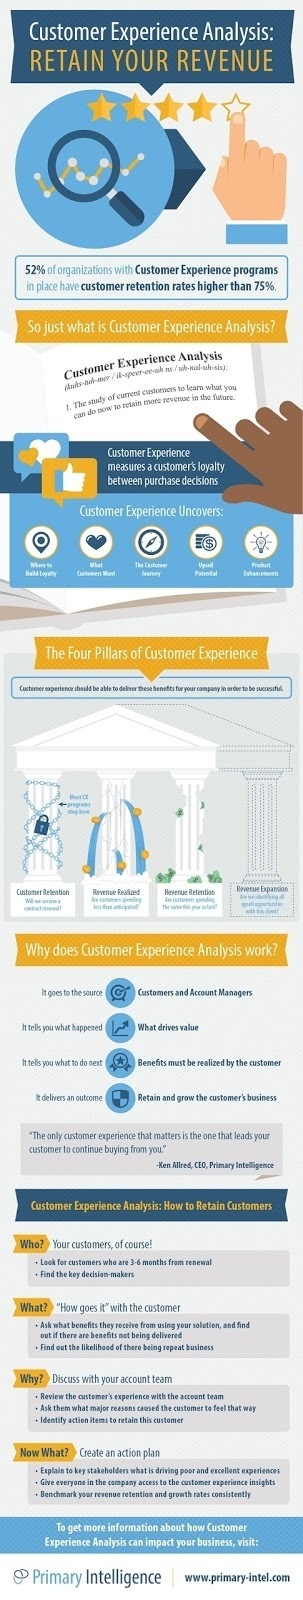 Customer Experience Analysis: How to Retain Your Customers [Infographic] | Customer and Employee Loyalty, Rewards &  Engagement | Scoop.it